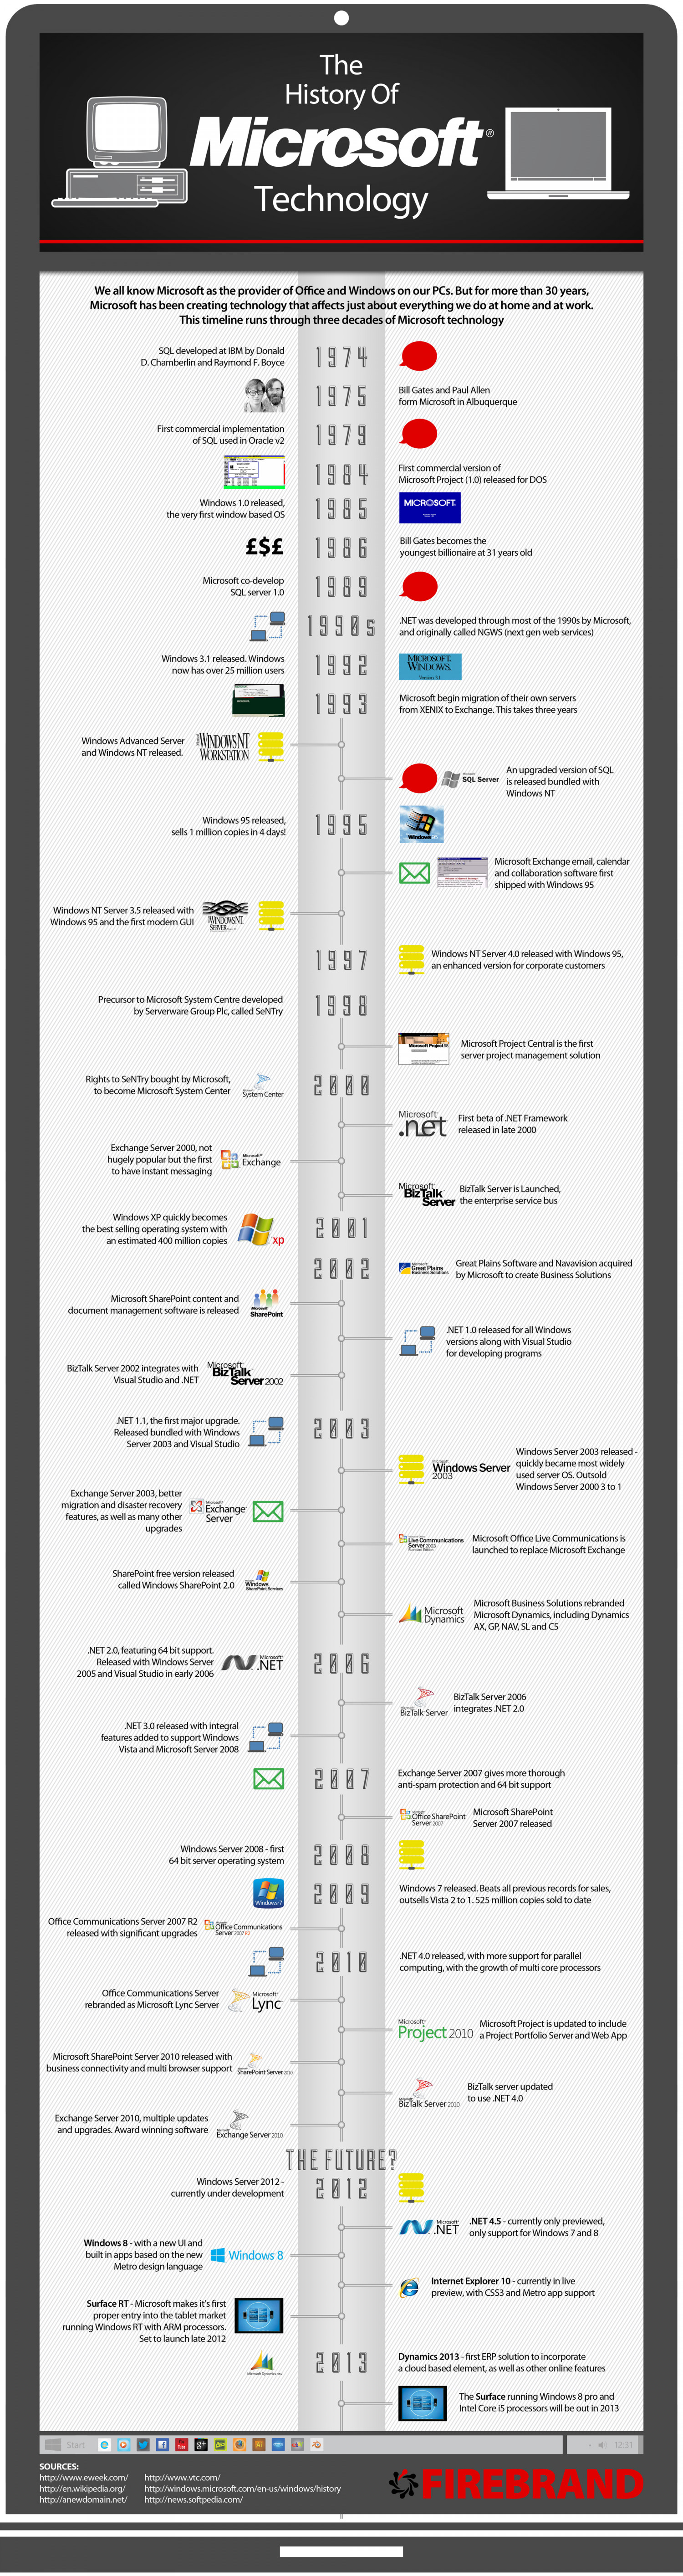 The History of Microsoft Technology Infographic